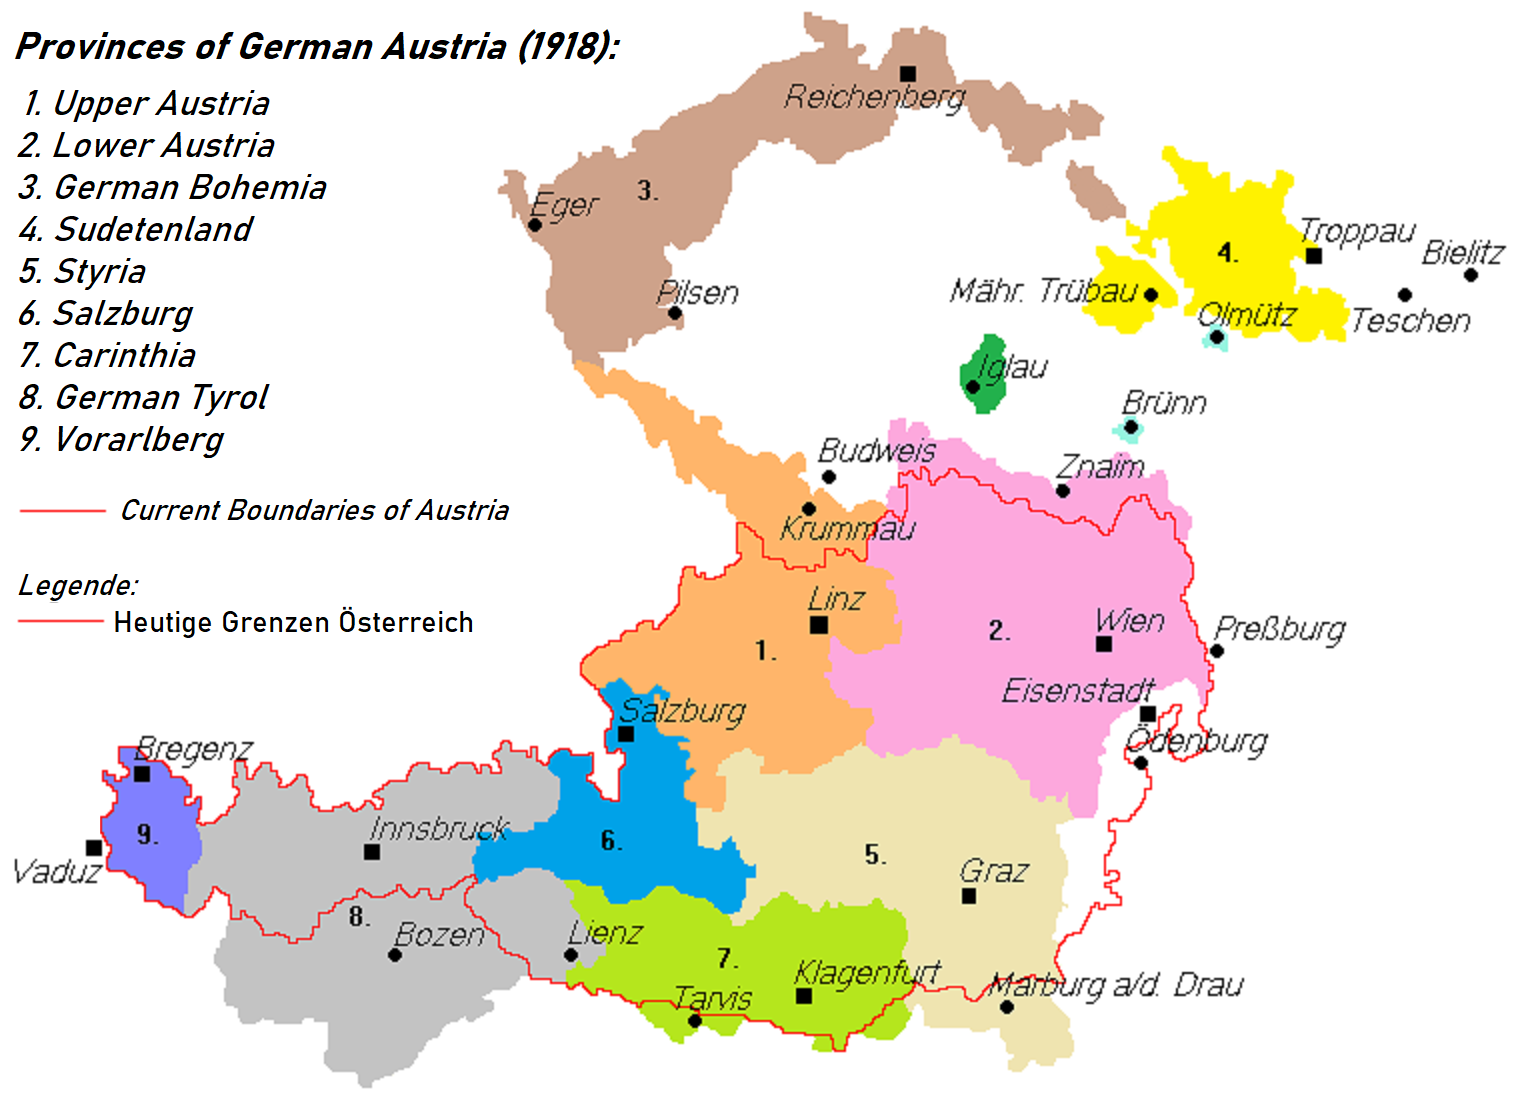 german speaking provinces claimed by german austria in 1918 the border of the subsequent second republic of austria is outlined in red